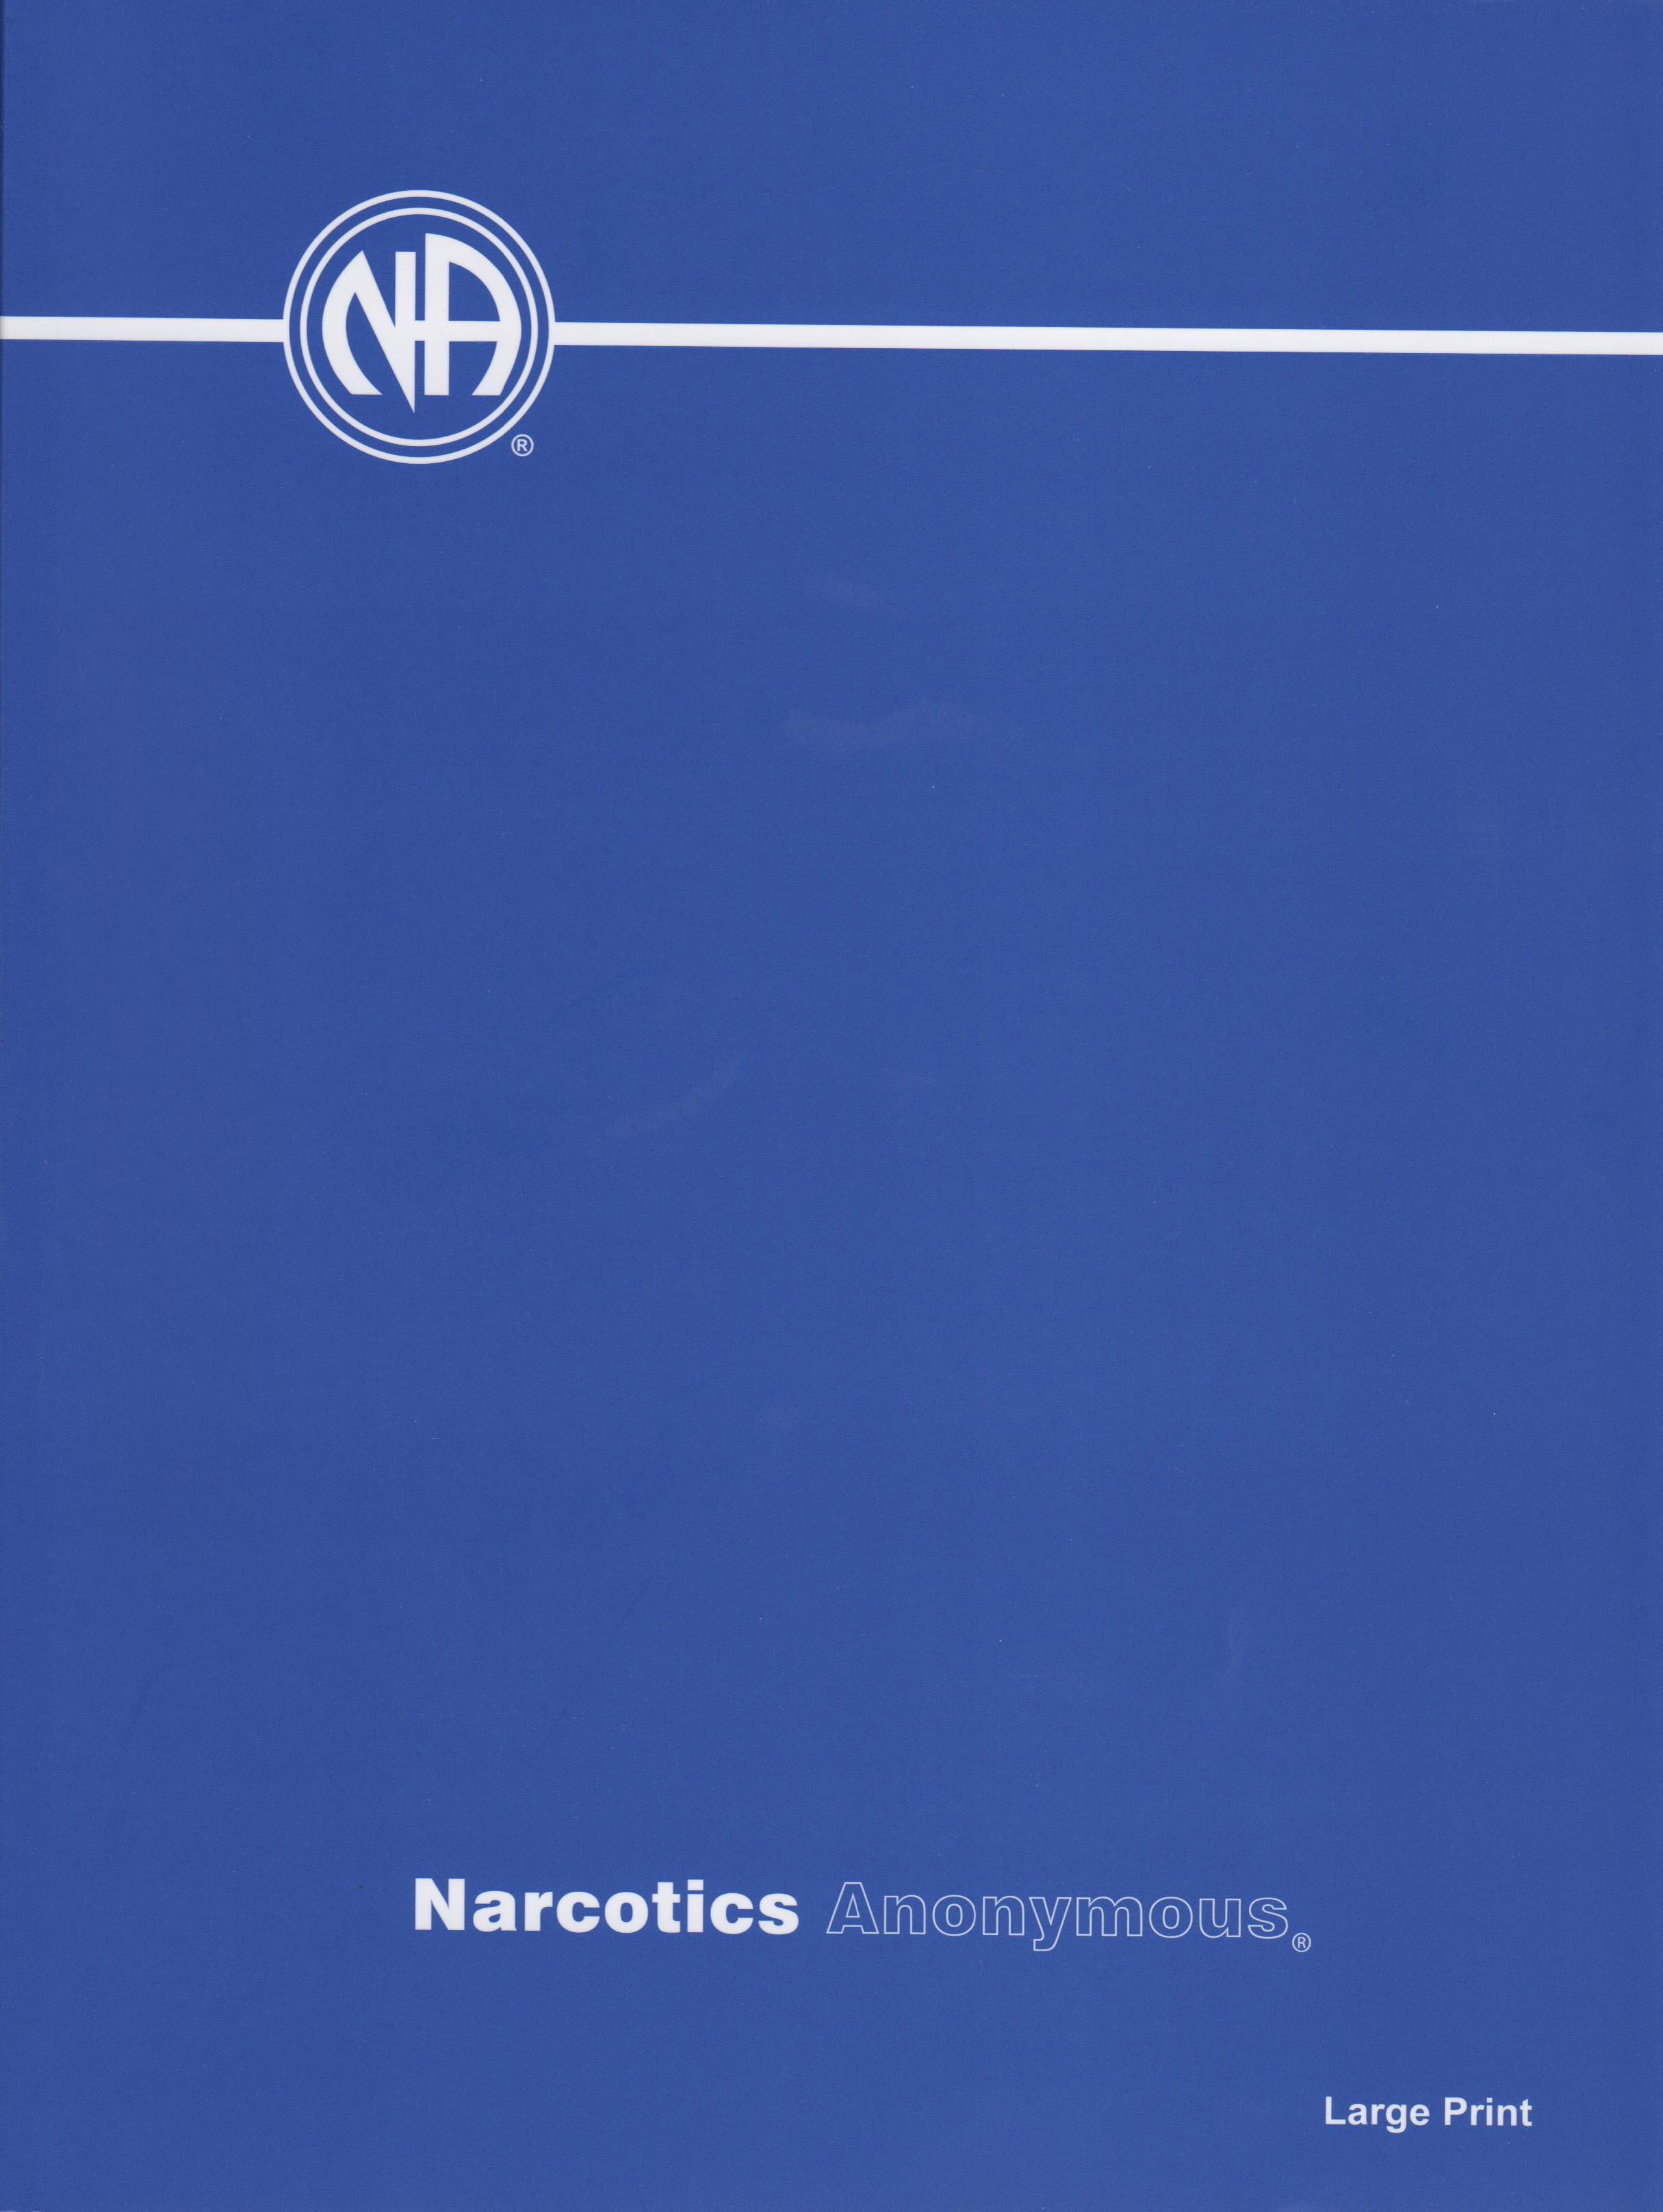 """step 1 narcotics anonymous Description narcotics anonymous step working guide this na 12 step guide provides a helpful background section discussing the principles relevant to each of our twelve steps, as well as some practical, """"hands-on"""" questions for review regarding the individual's understanding of each step."""